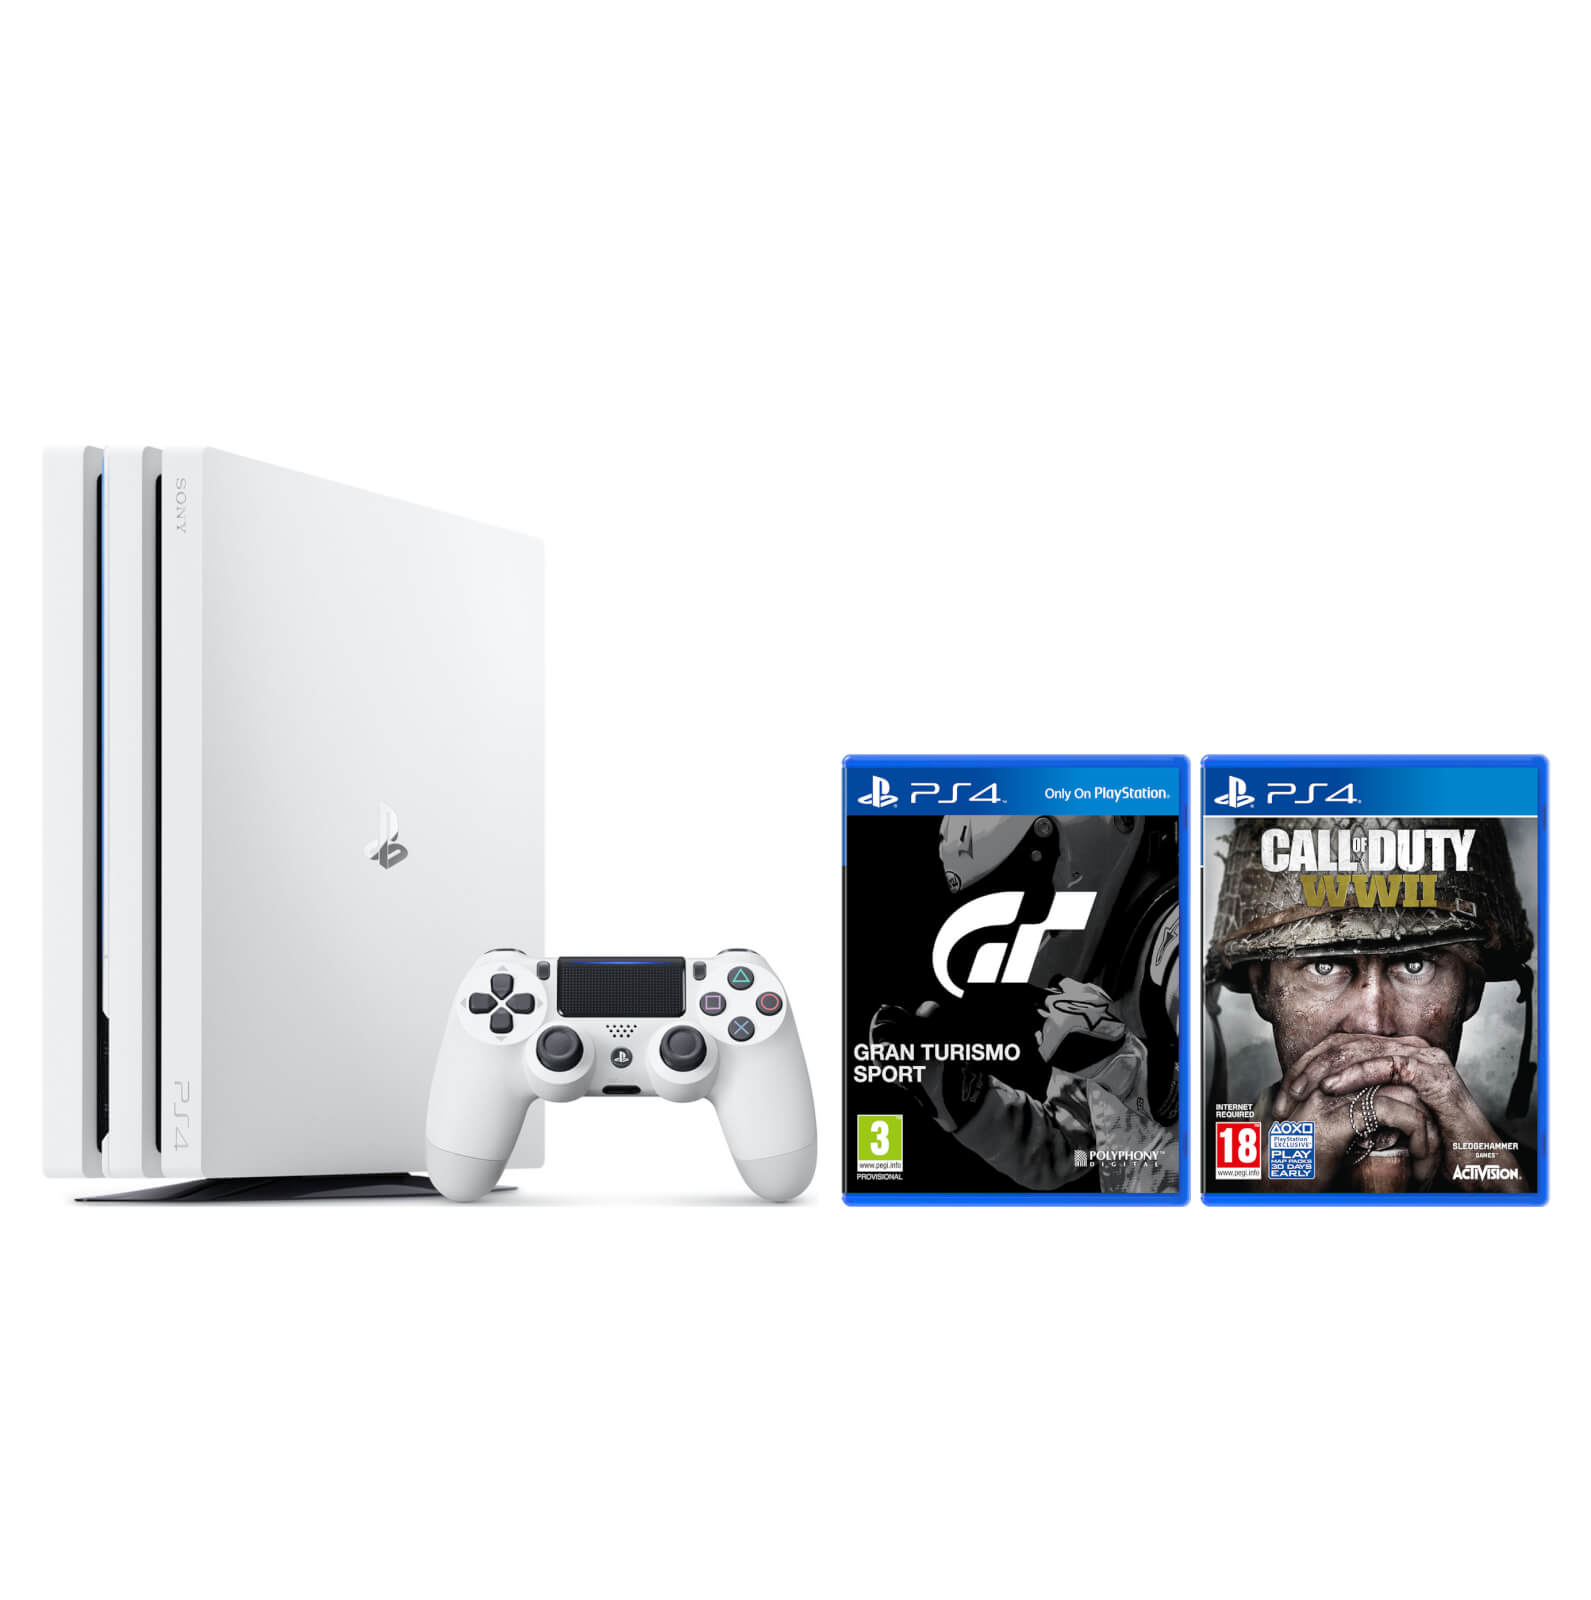 Tidssvarende Sony PlayStation 4 Pro 1TB White with Gran Turismo Sport & Call of OM-59